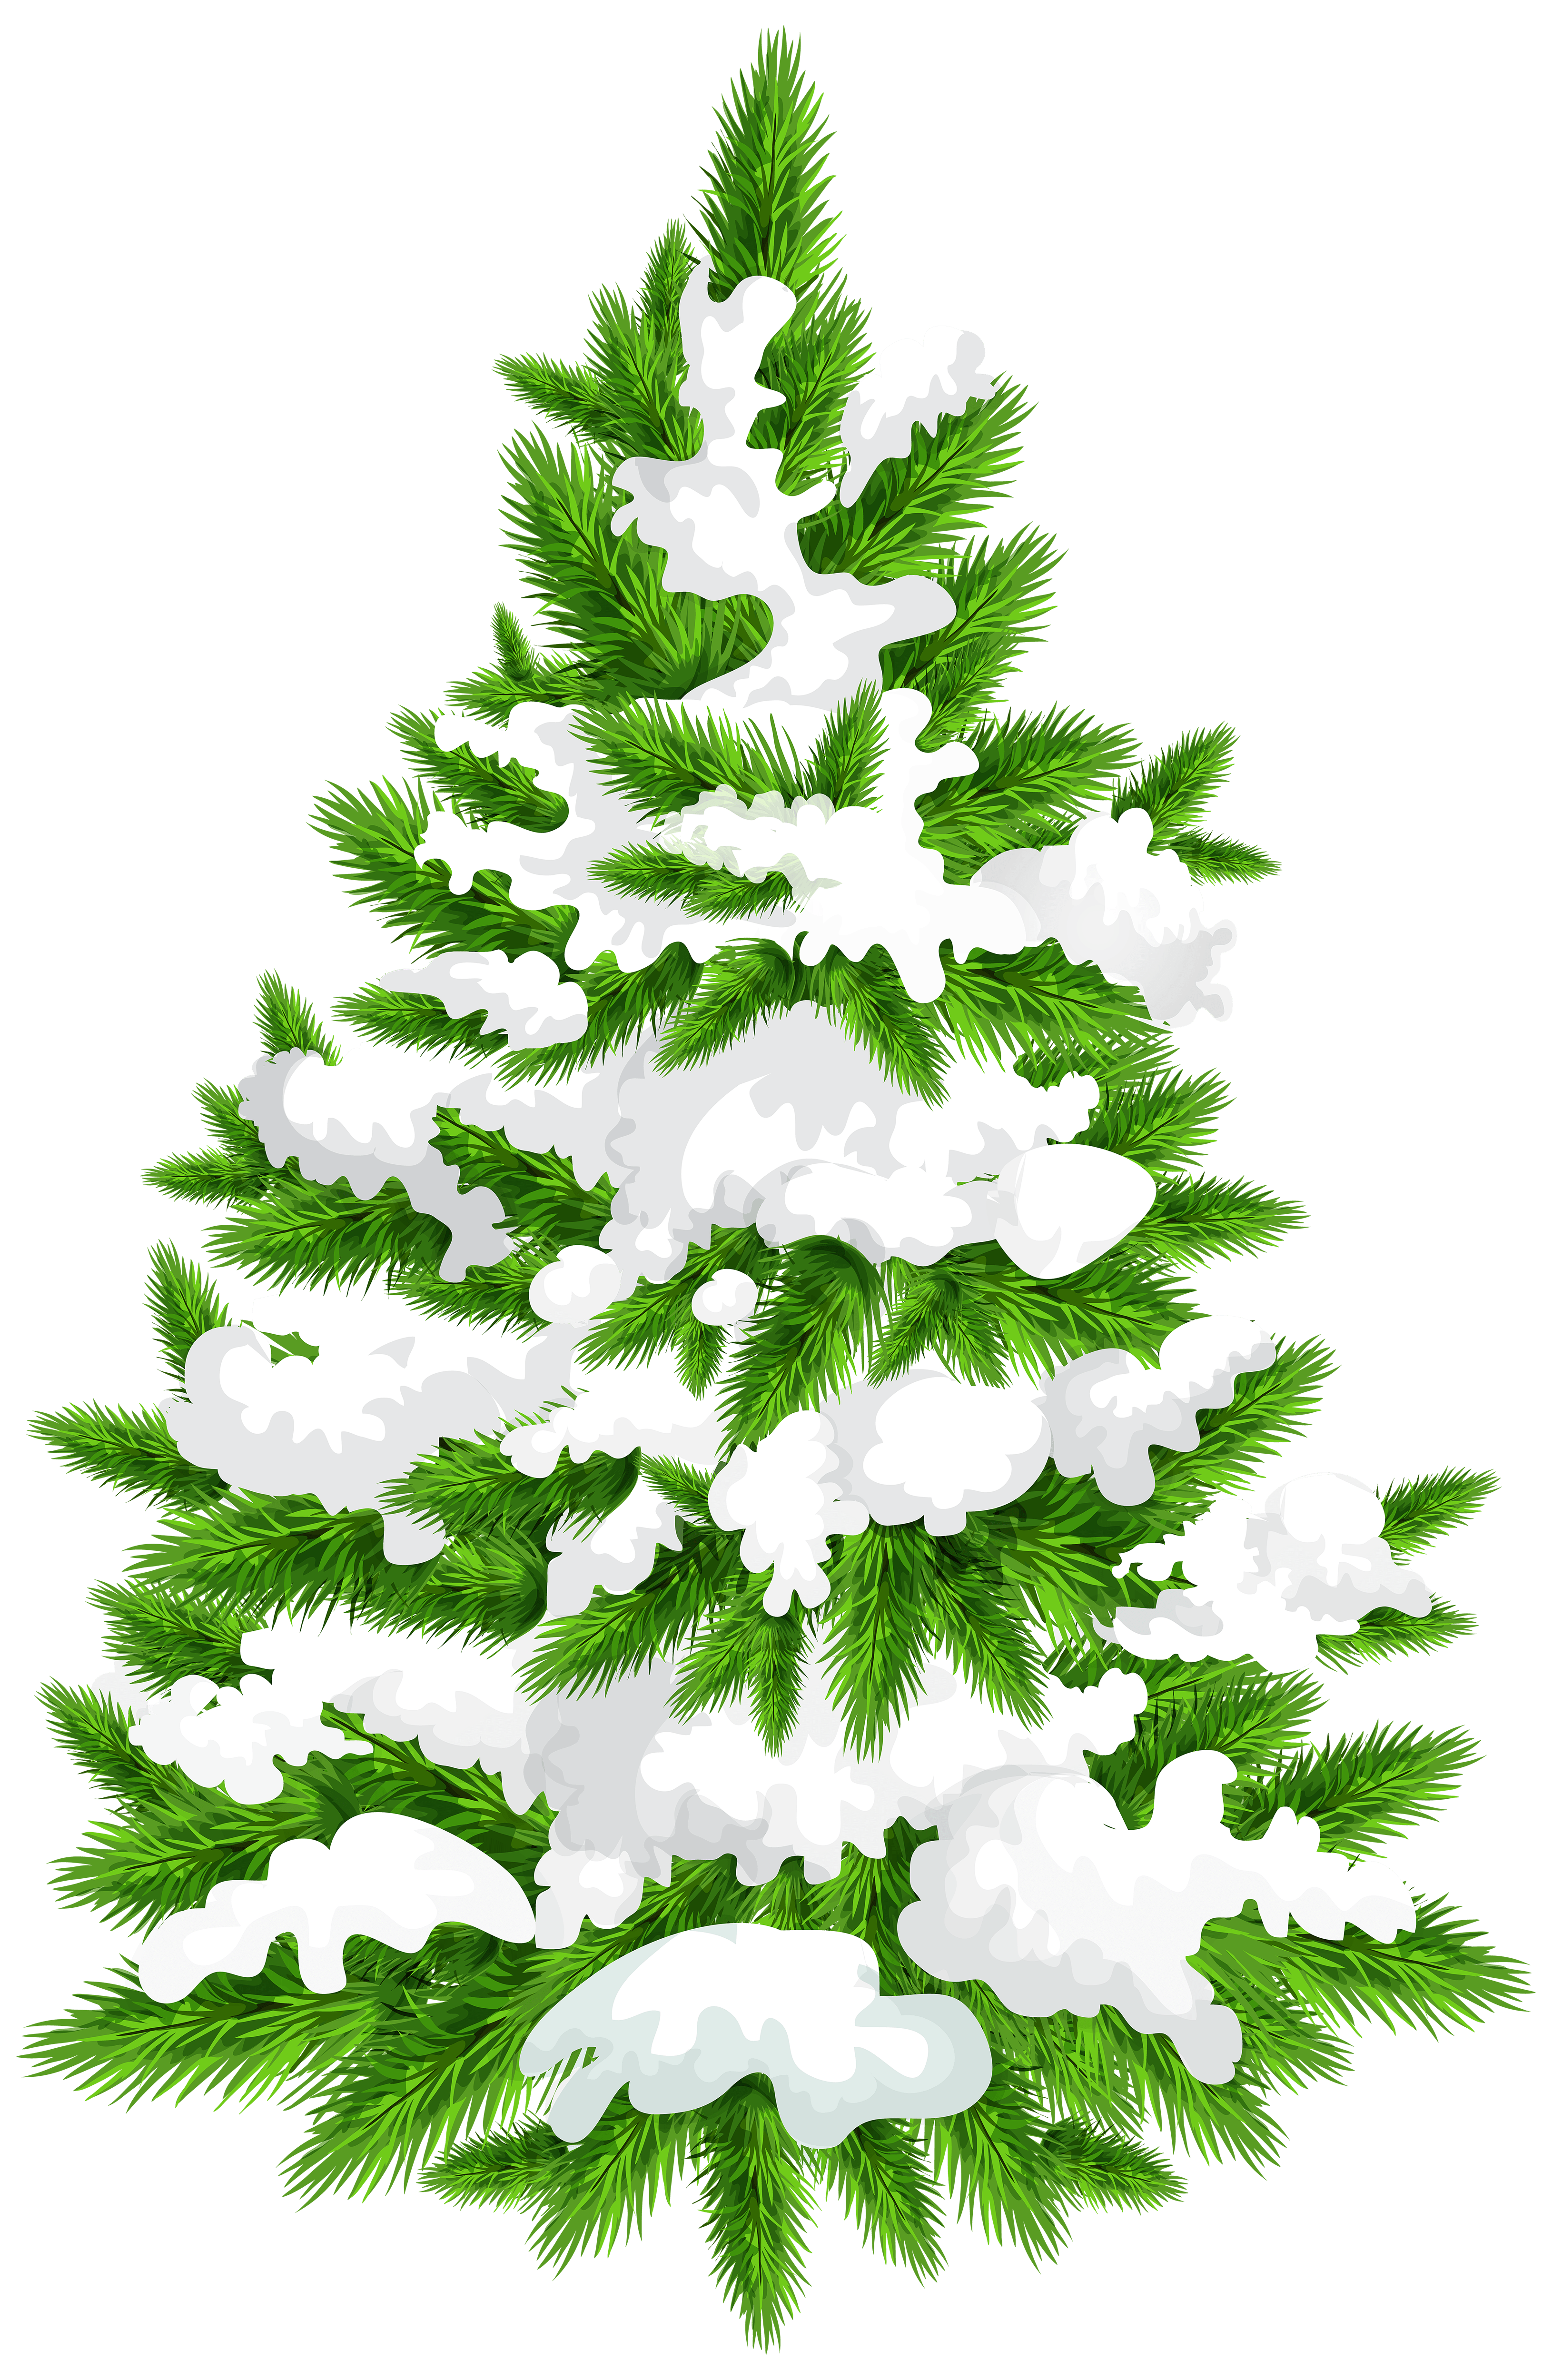 hight resolution of snowy pine tree png clip art image